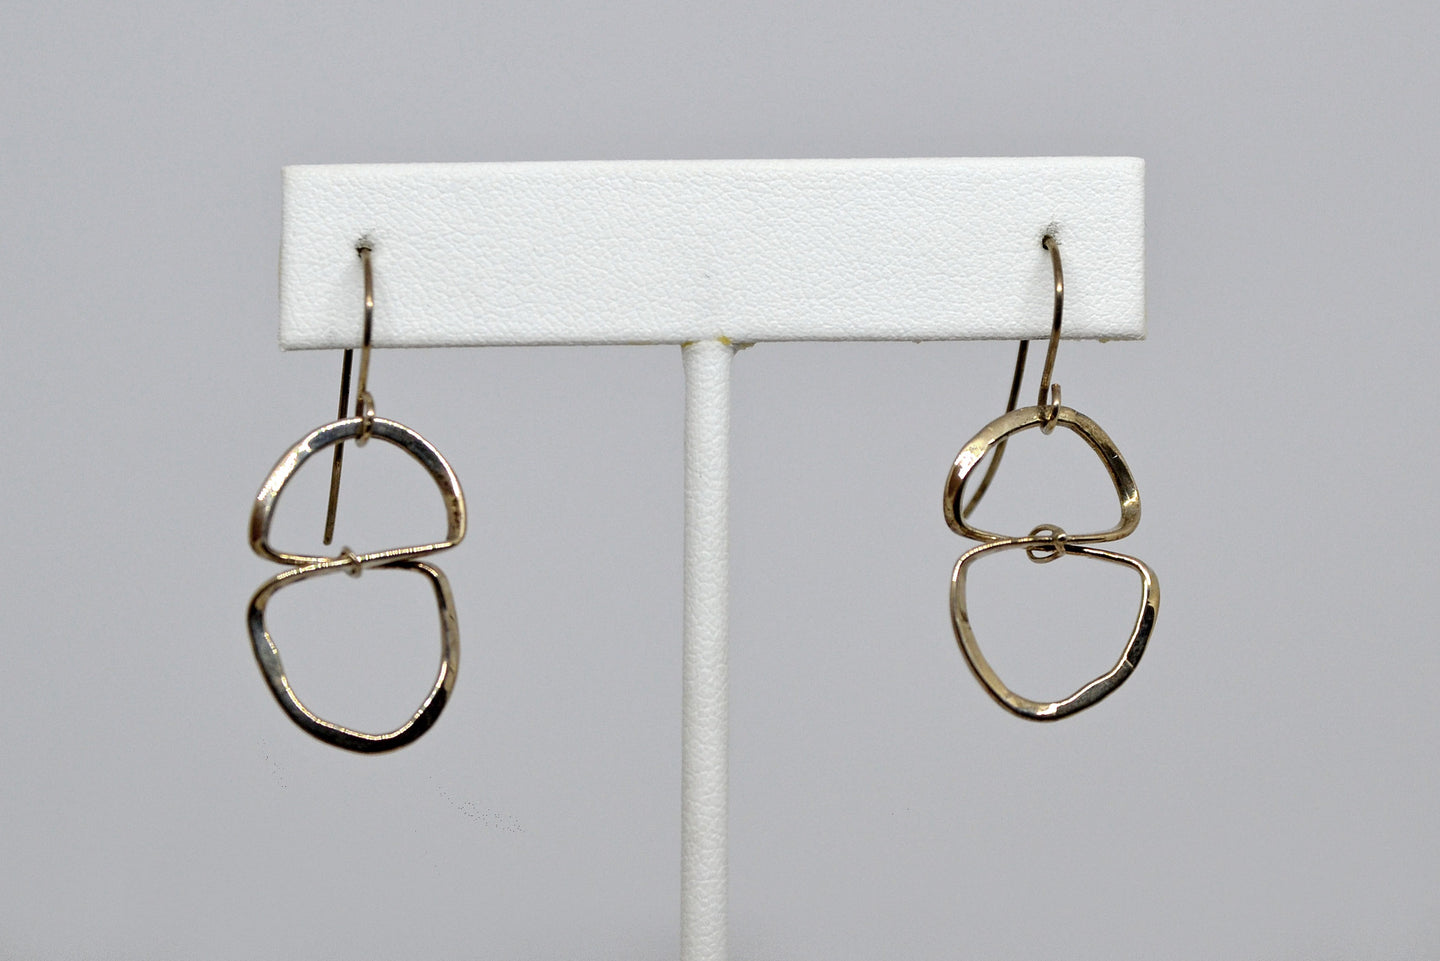 Earrings(13-0272)- Double squiggles